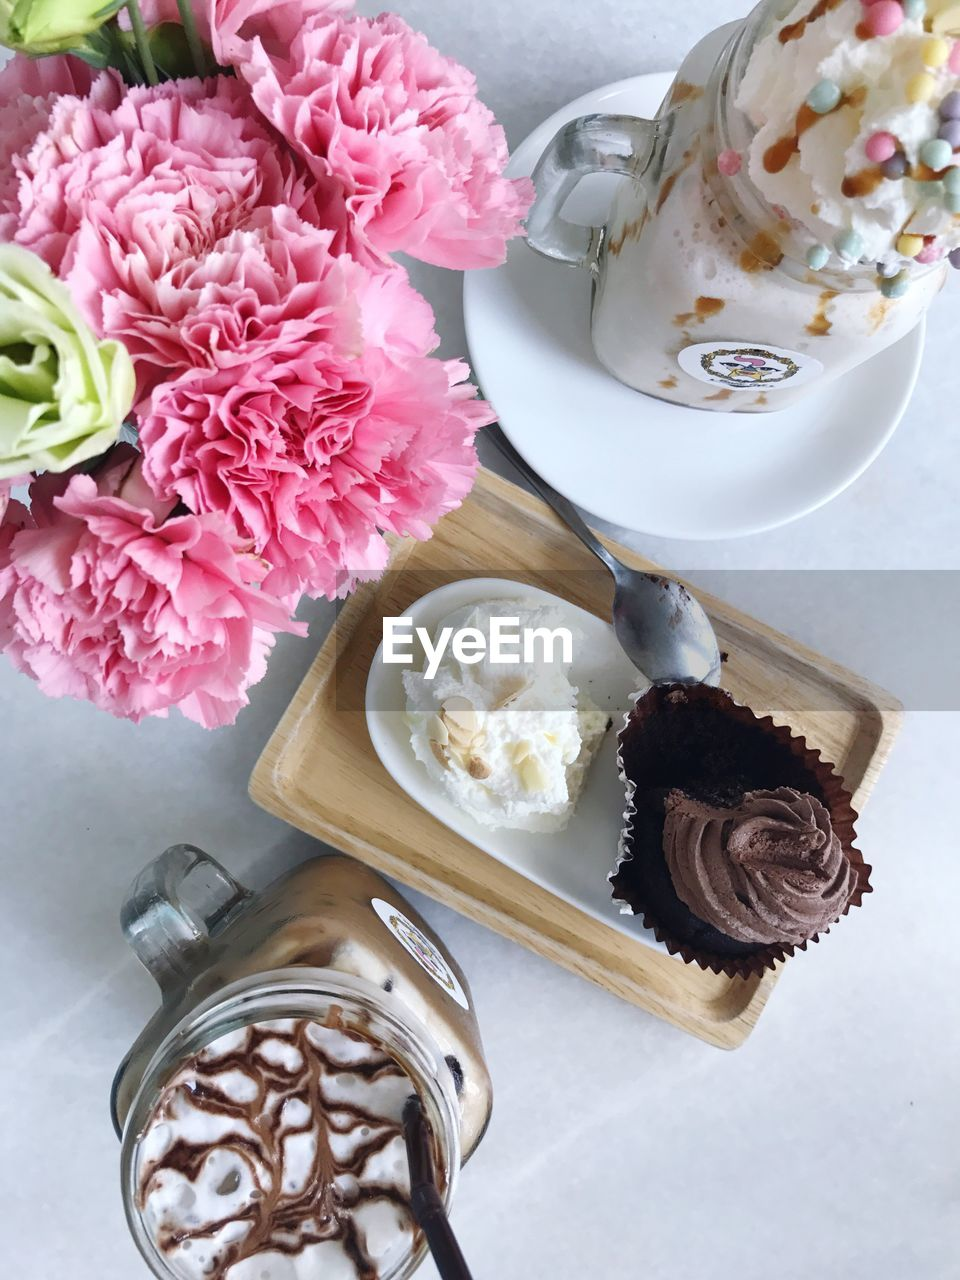 flower, freshness, food and drink, high angle view, no people, sweet food, indulgence, indoors, table, directly above, temptation, food, ready-to-eat, day, close-up